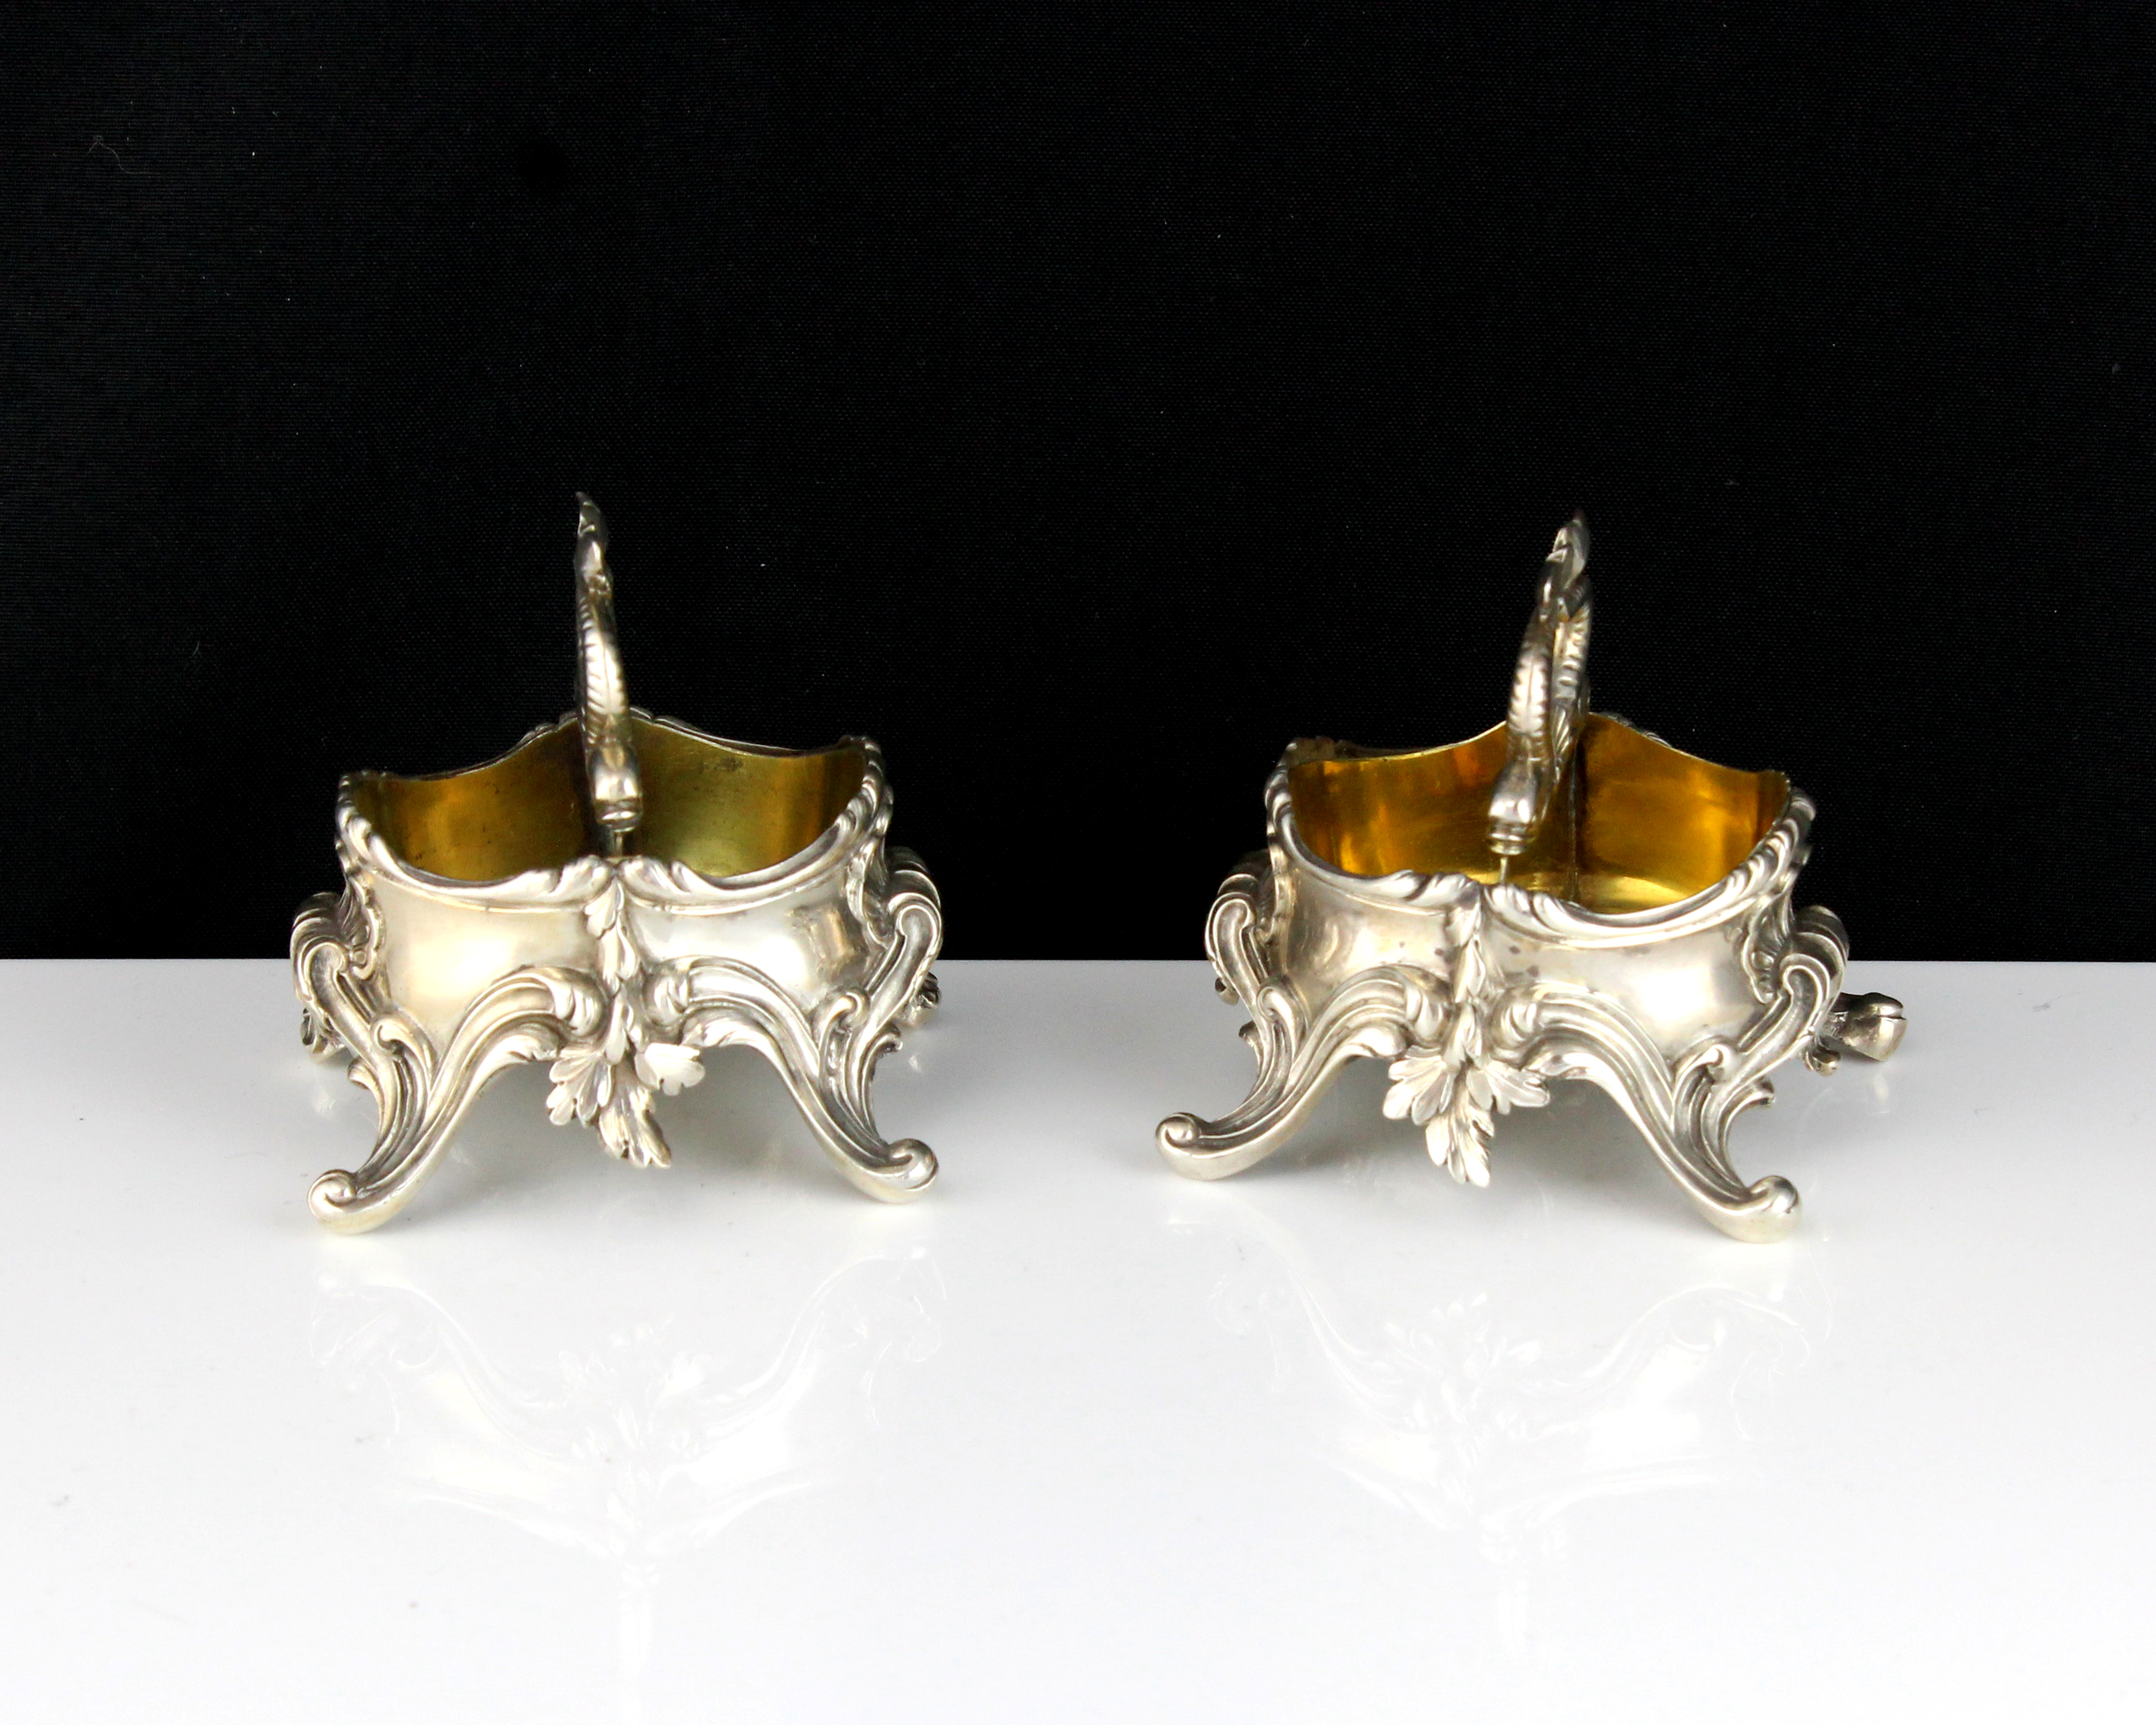 A pair of antique 19th Century French Silver salt / condiment cellars by Durand each of oval form on